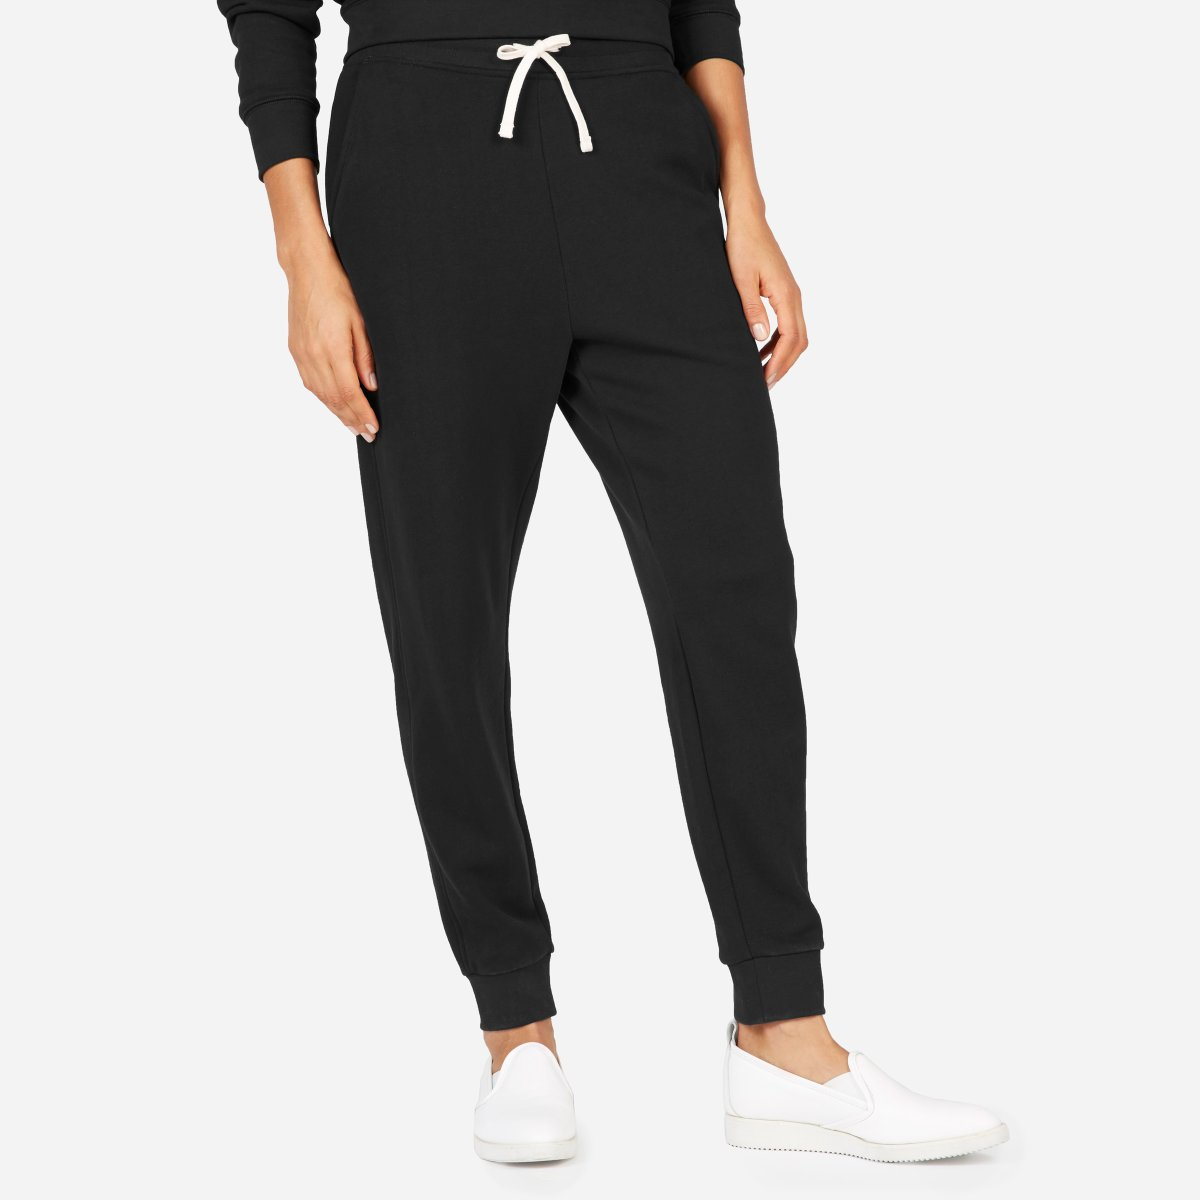 174761ac6ab41 Your browser does not support HTML5 video. Here is the link to the video w french  terry sweatpant washed black.